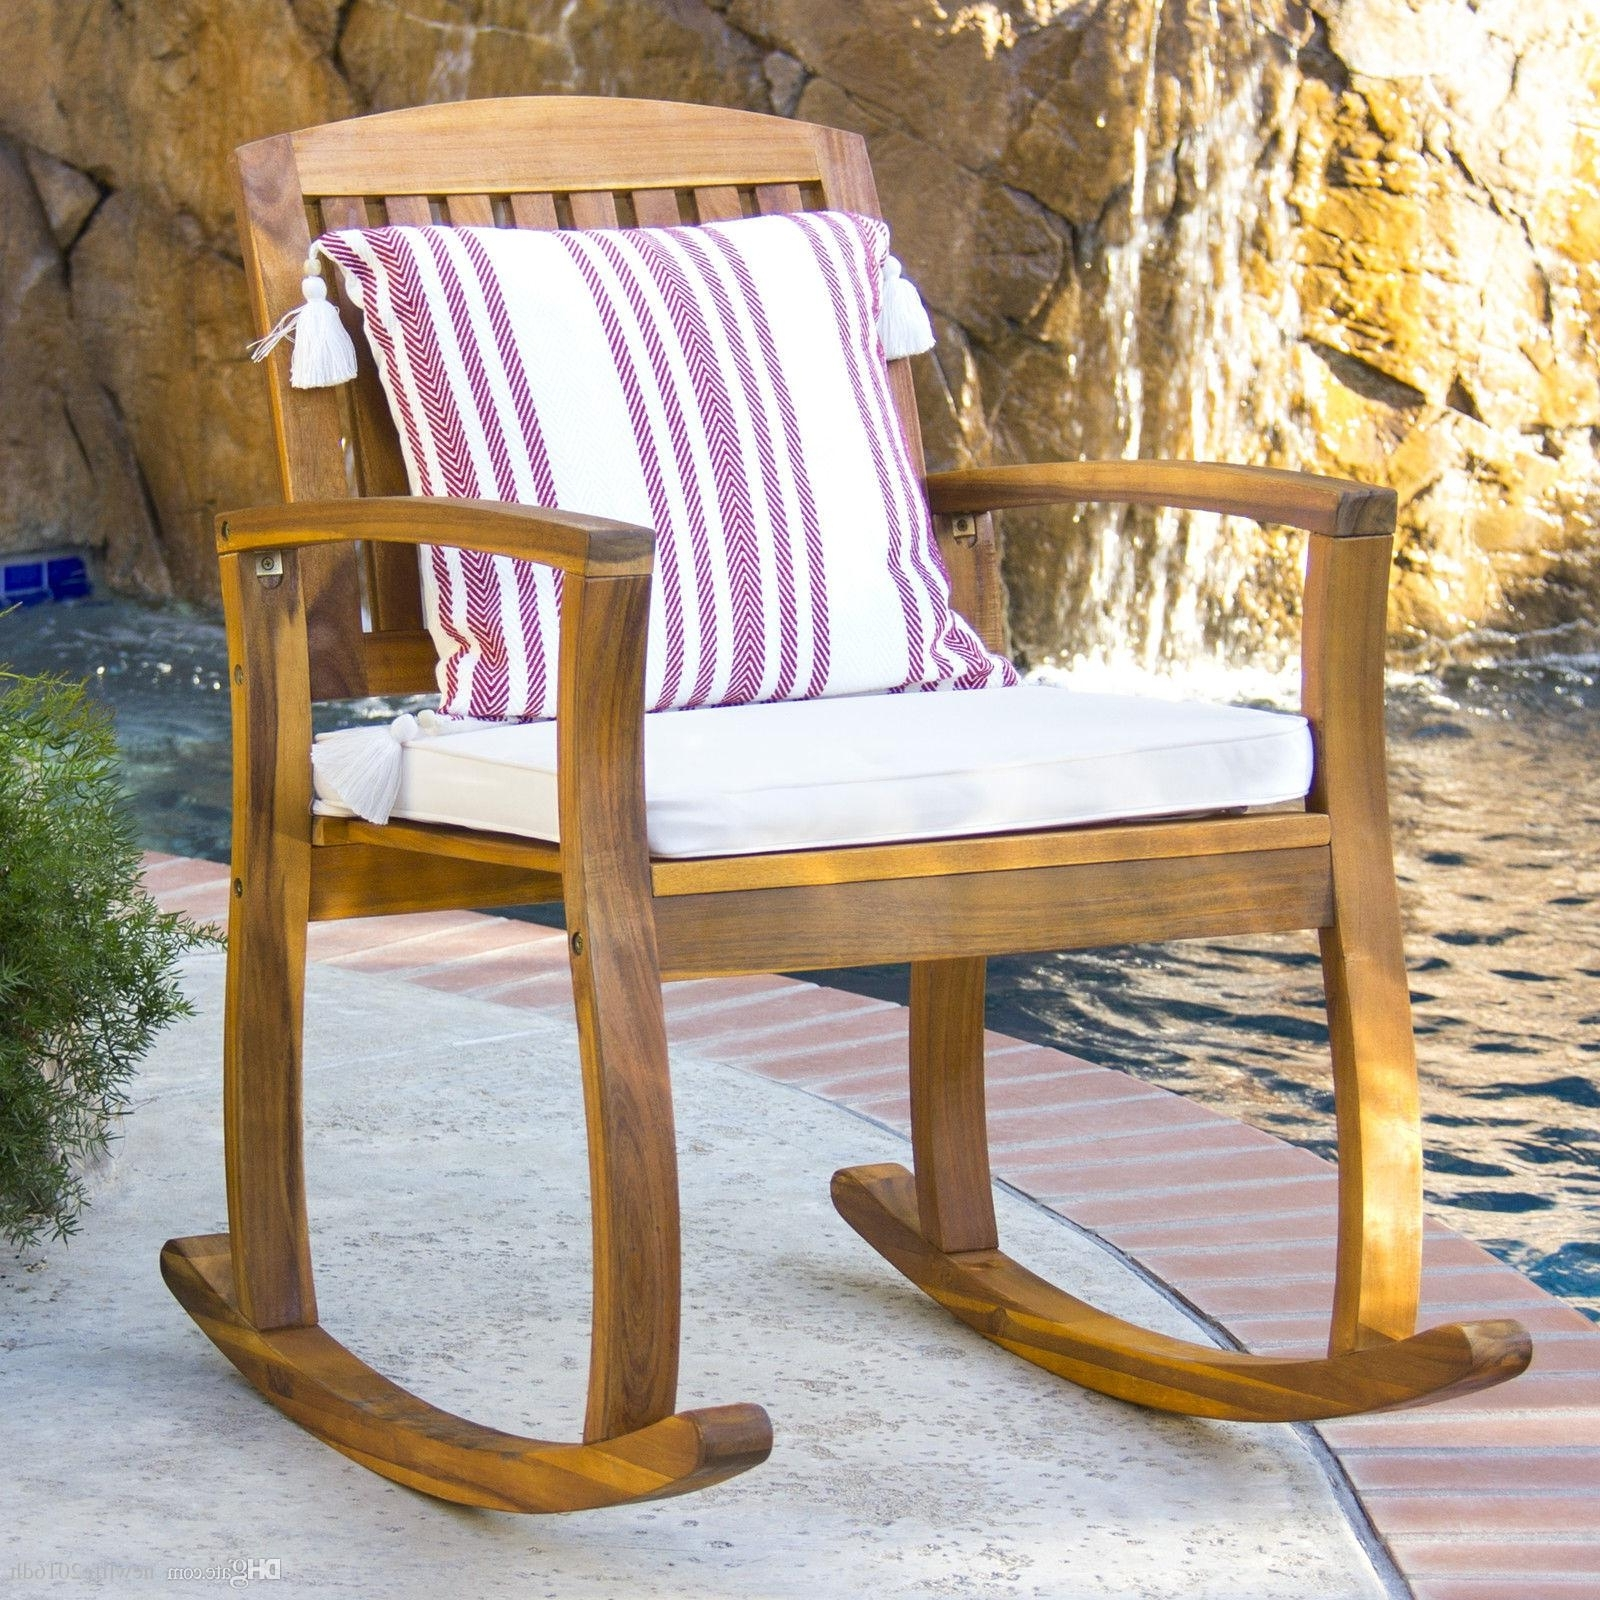 Preferred 2018 Outdoor Patio Acacia Wood Rocking Chair W/ Removable Seat In Patio Wooden Rocking Chairs (View 15 of 20)